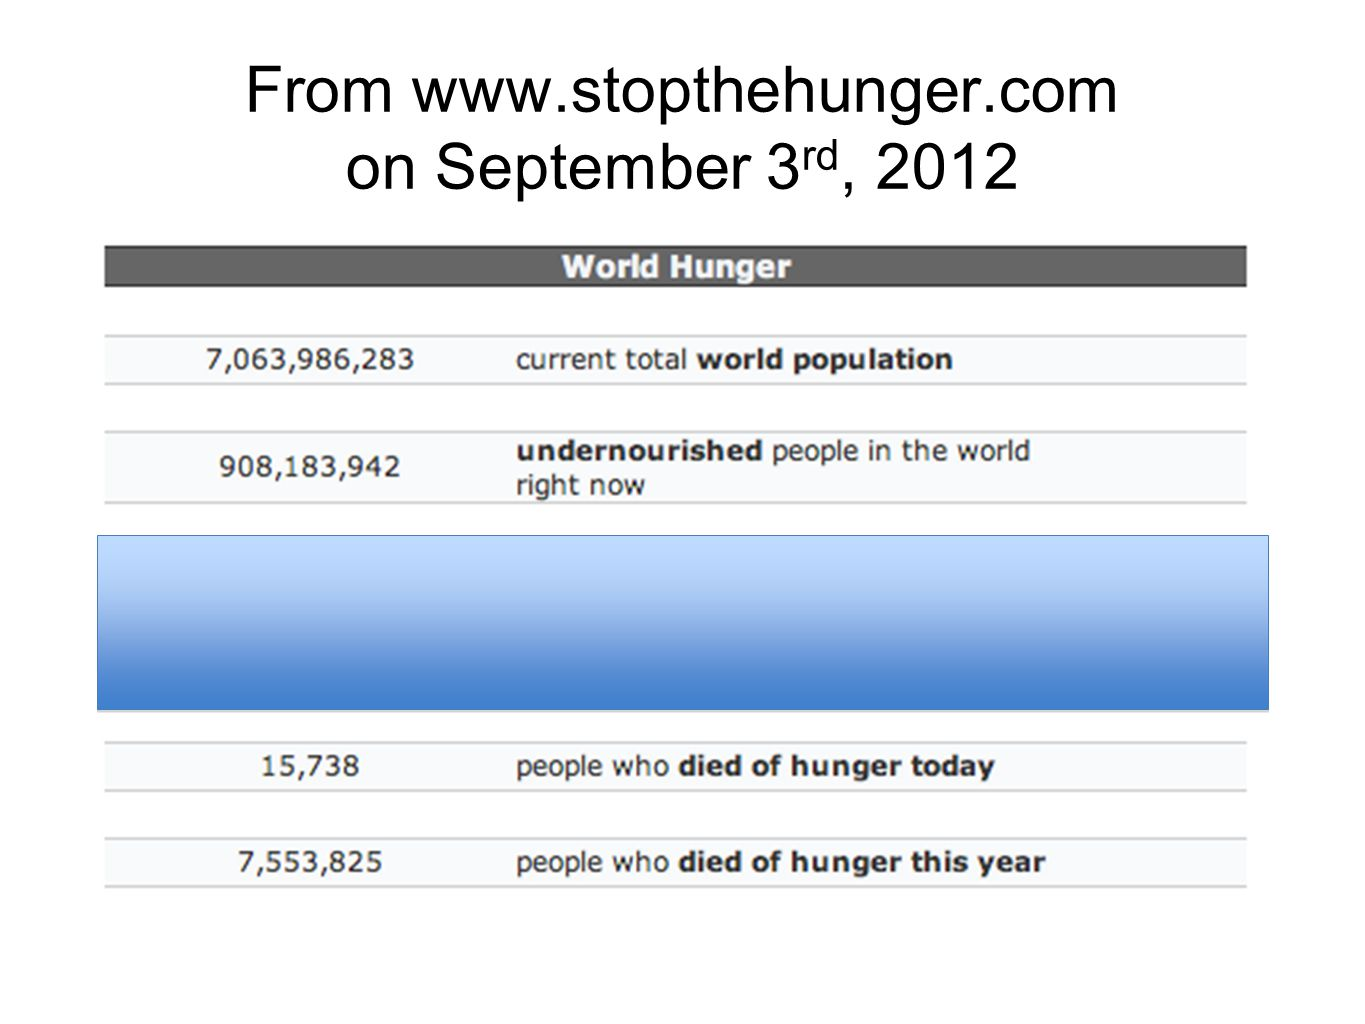 From www.stopthehunger.com on September 3 rd, 2012